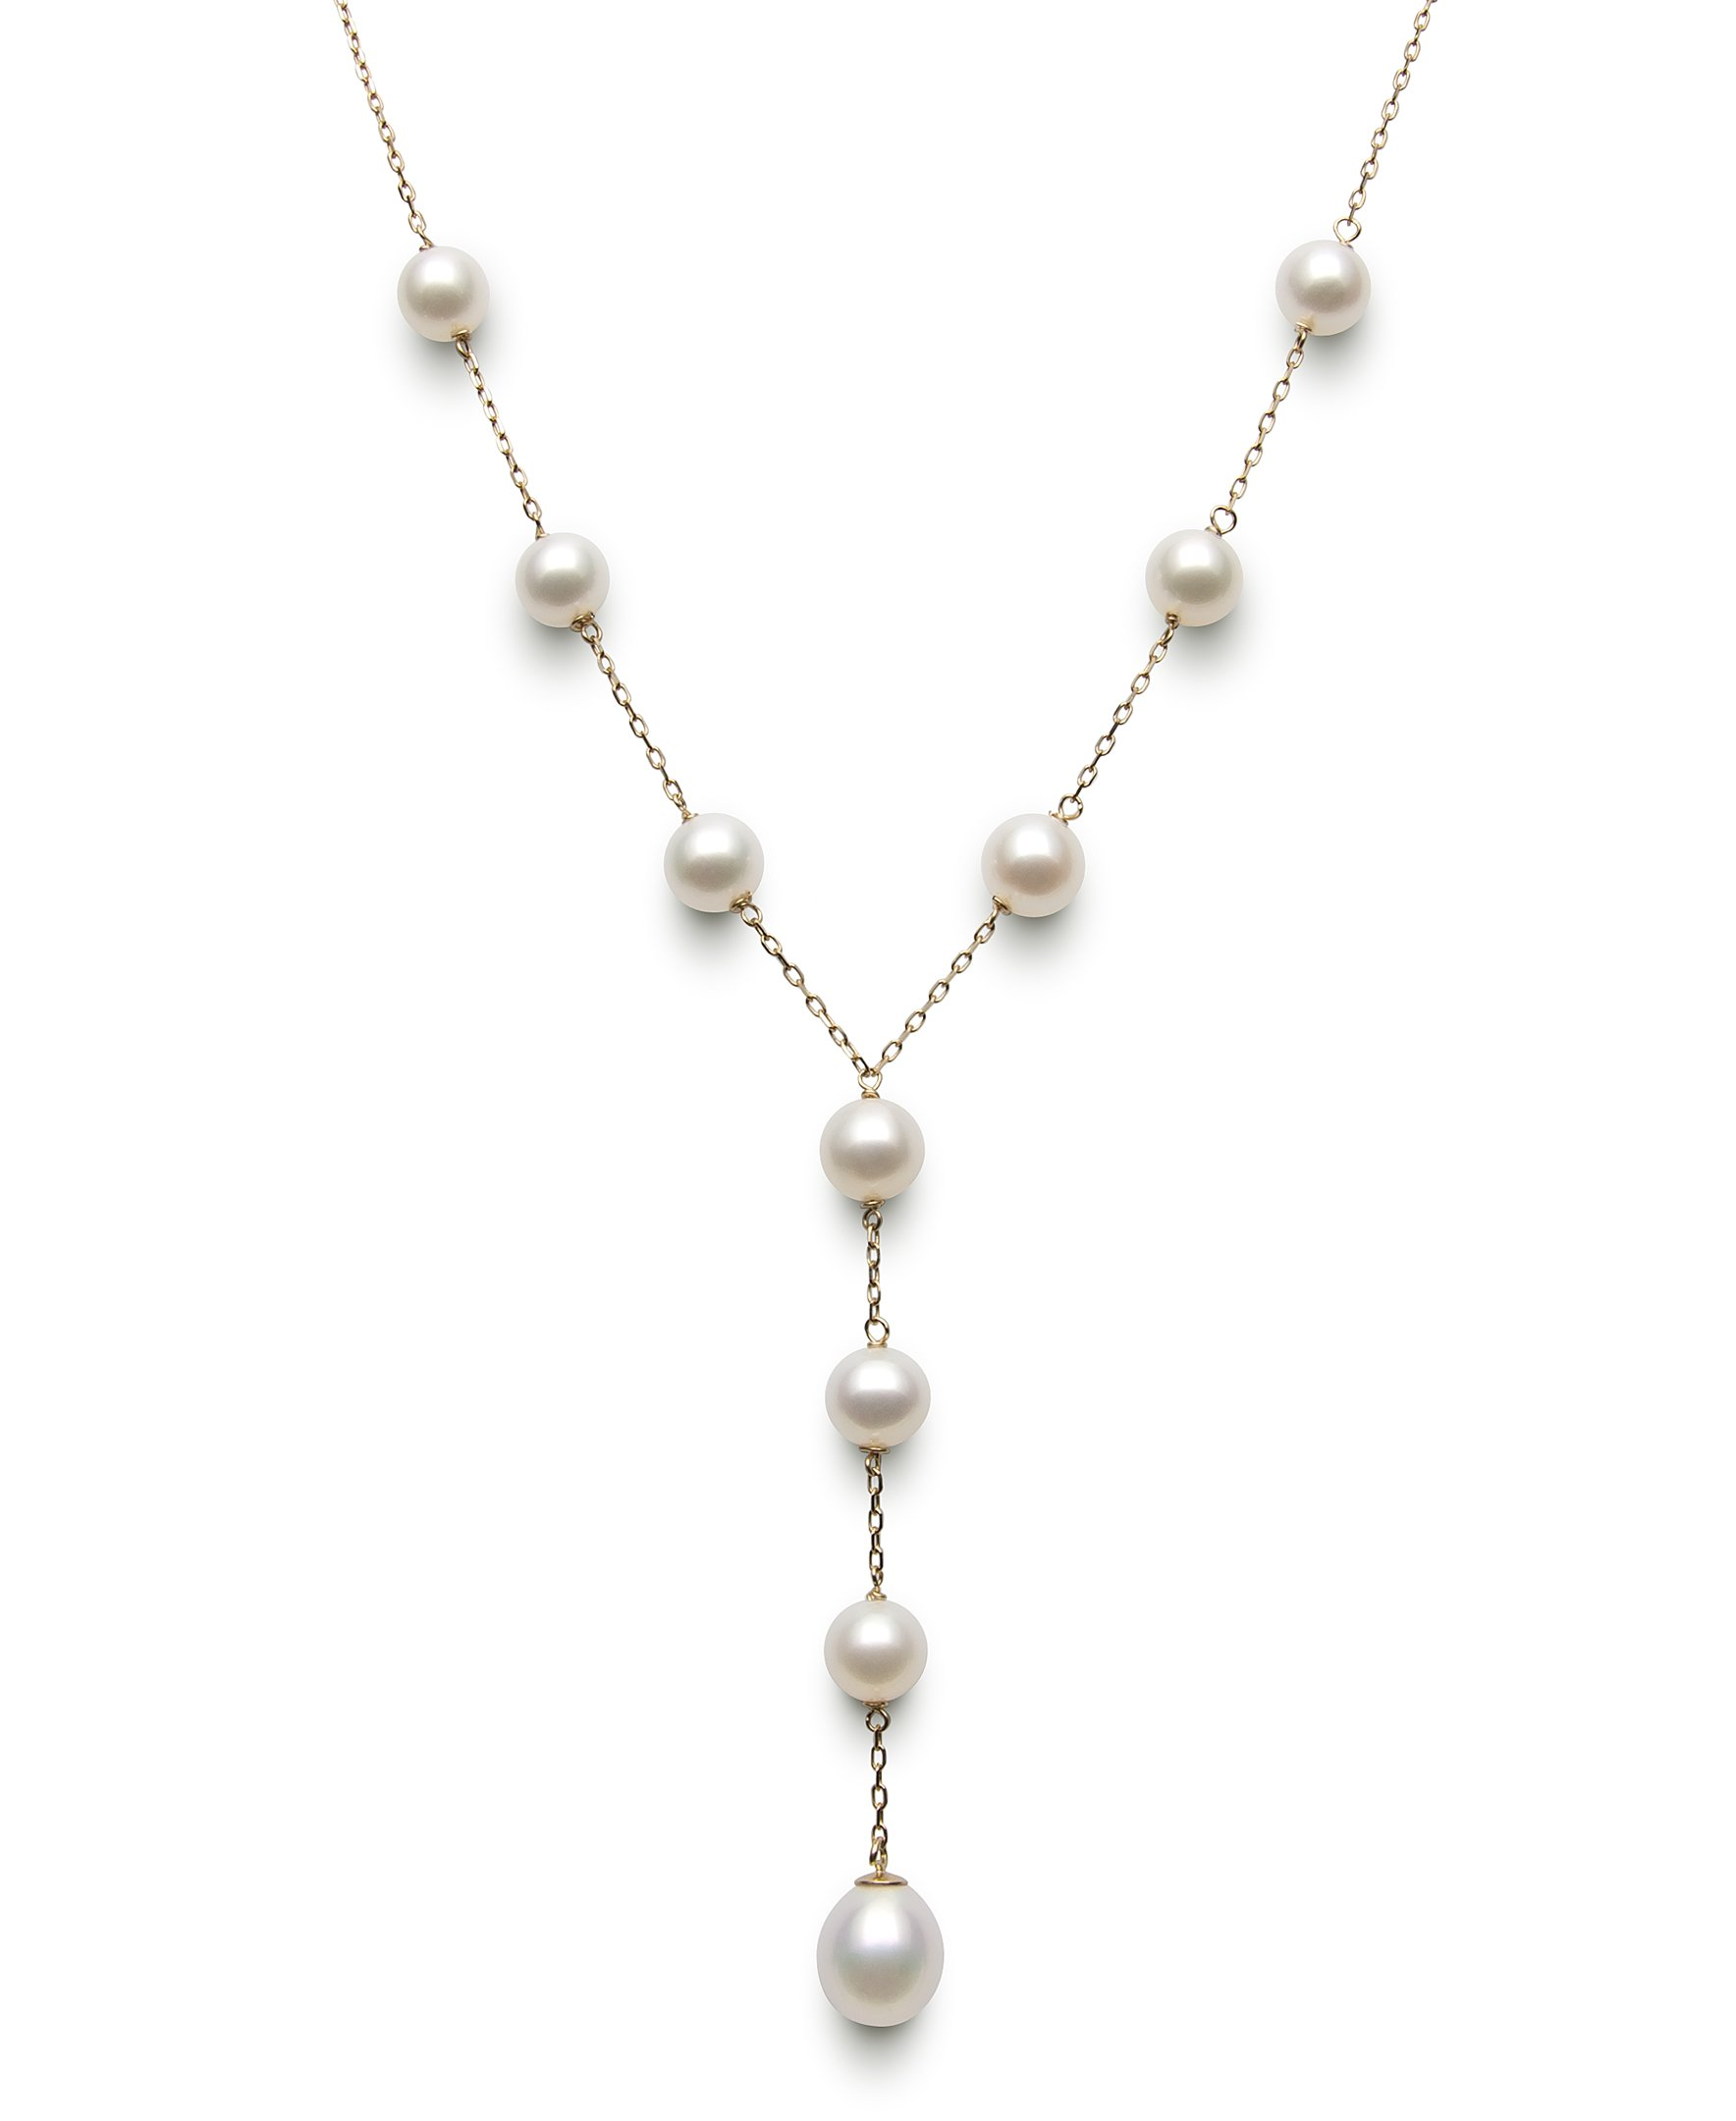 14k Yellow Gold Freshwater Cultured Pearl Y Necklace for Women, 17.5'' by Belacqua